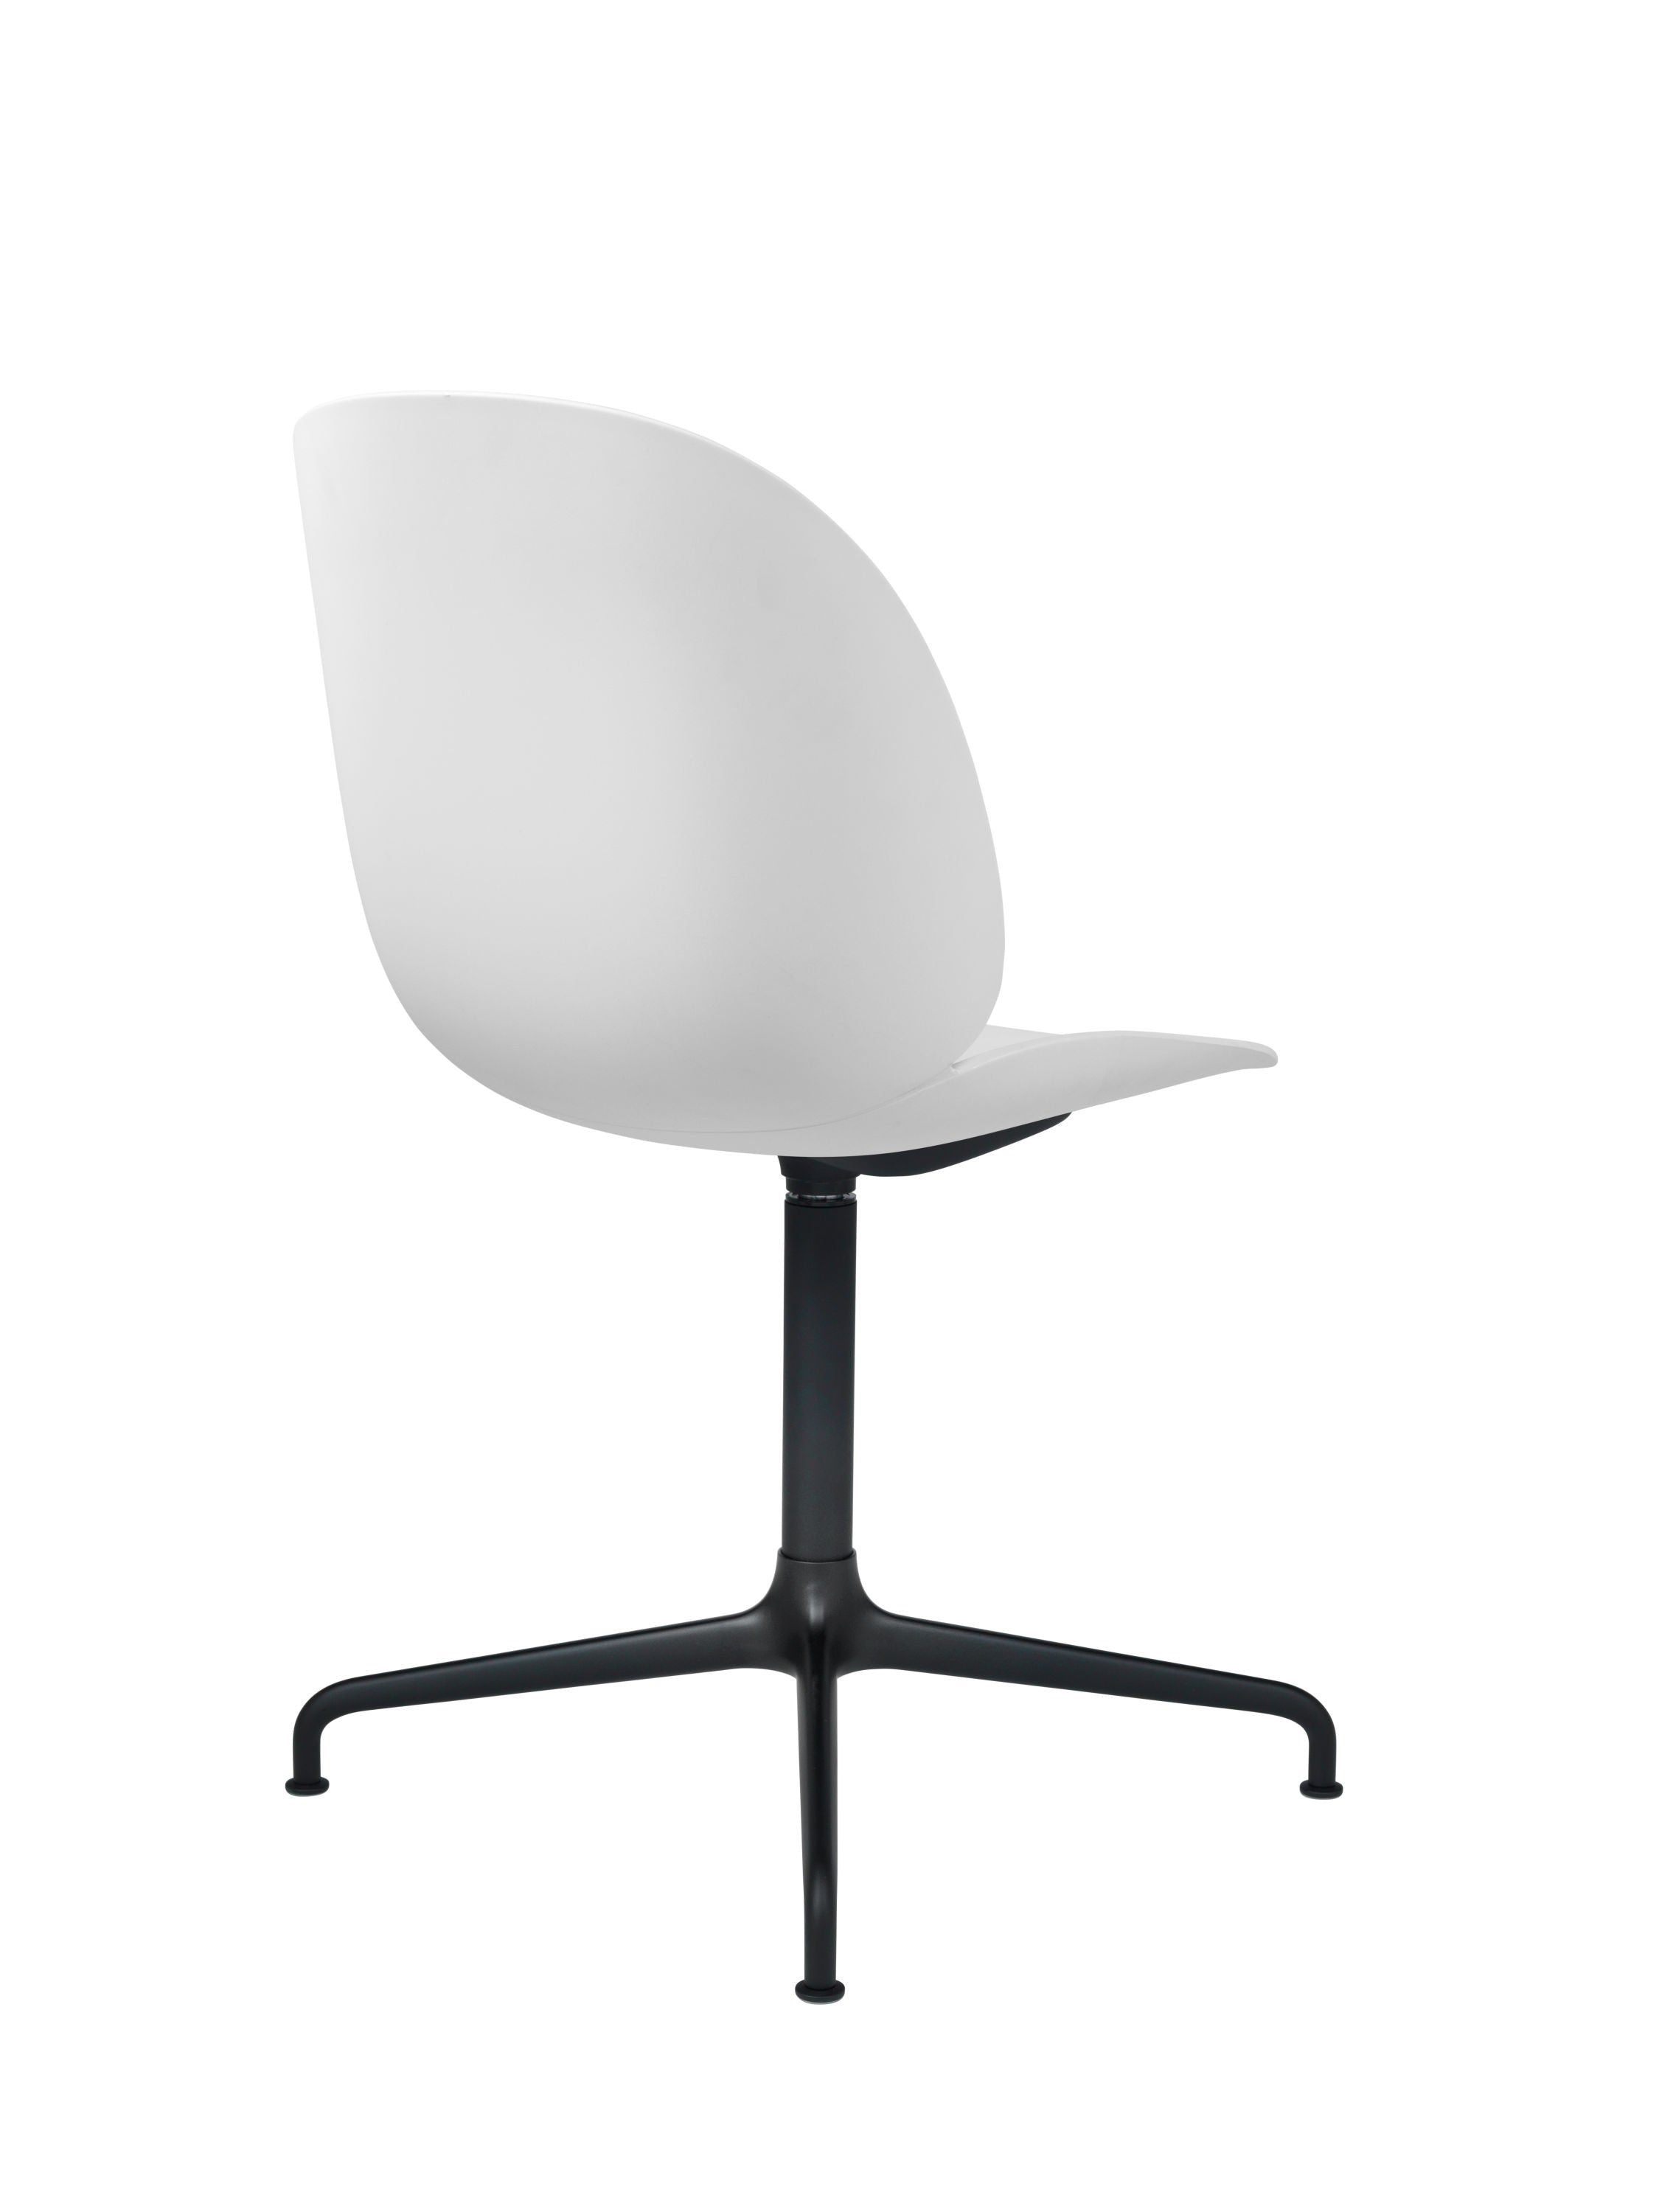 Beetle Dining Chair - Un-upholstered Casted Swivel base Black, White shell fra GUBI